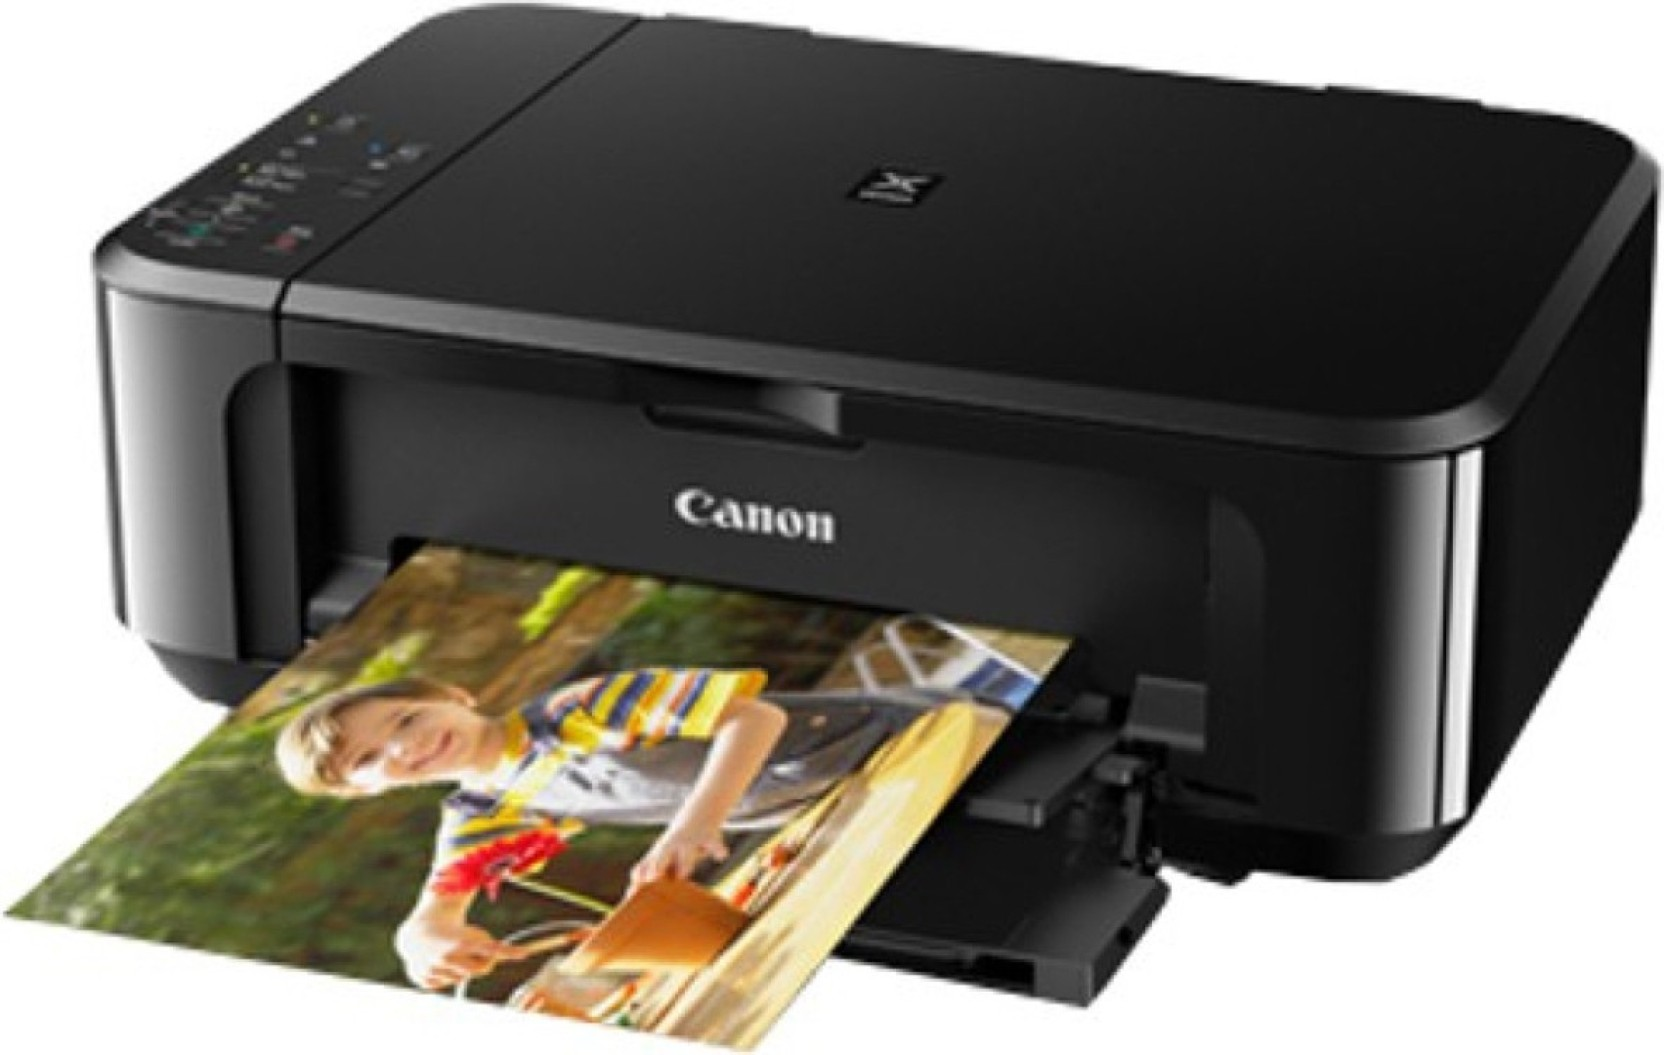 Harga Canon Mg3060 Pixma Inkjet Printer Black Michaels Camera Video Chronoforce 5178 2lb Mg3670 Multi Function Wireless Digital Add To